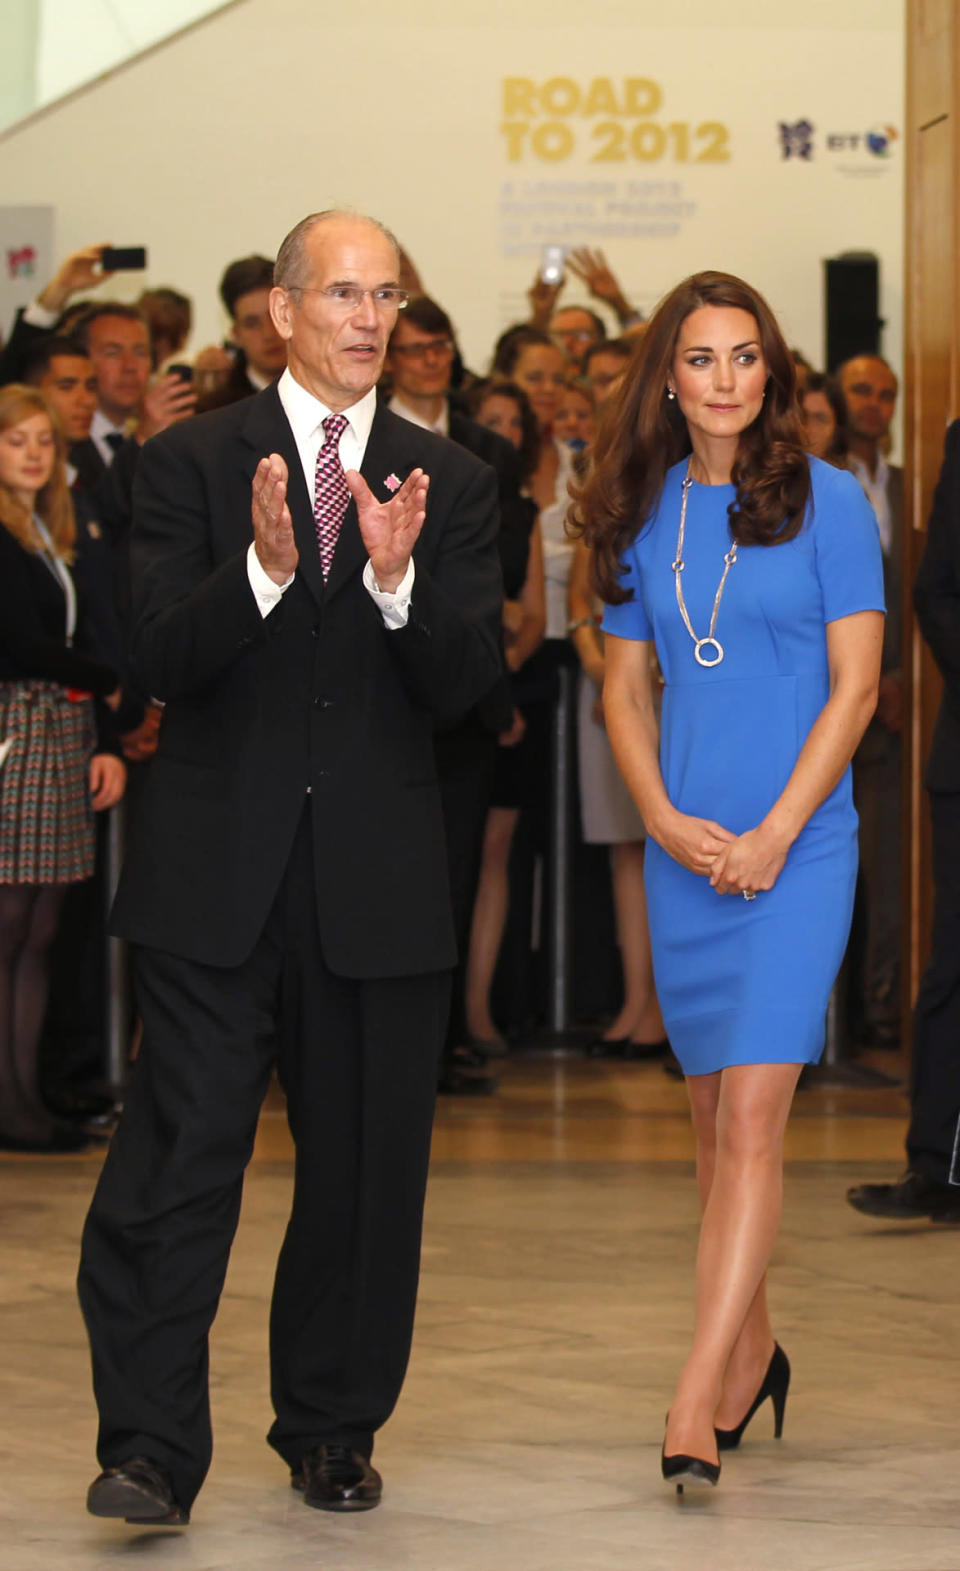 <p>Visiting an exhibition at the National Portrait Gallery, Kate donned a favourite blue Stella McCartney dress with a circular Cartier necklace. She completed the look with black Prada heels.</p><p><i>[Photo: PA]</i></p>